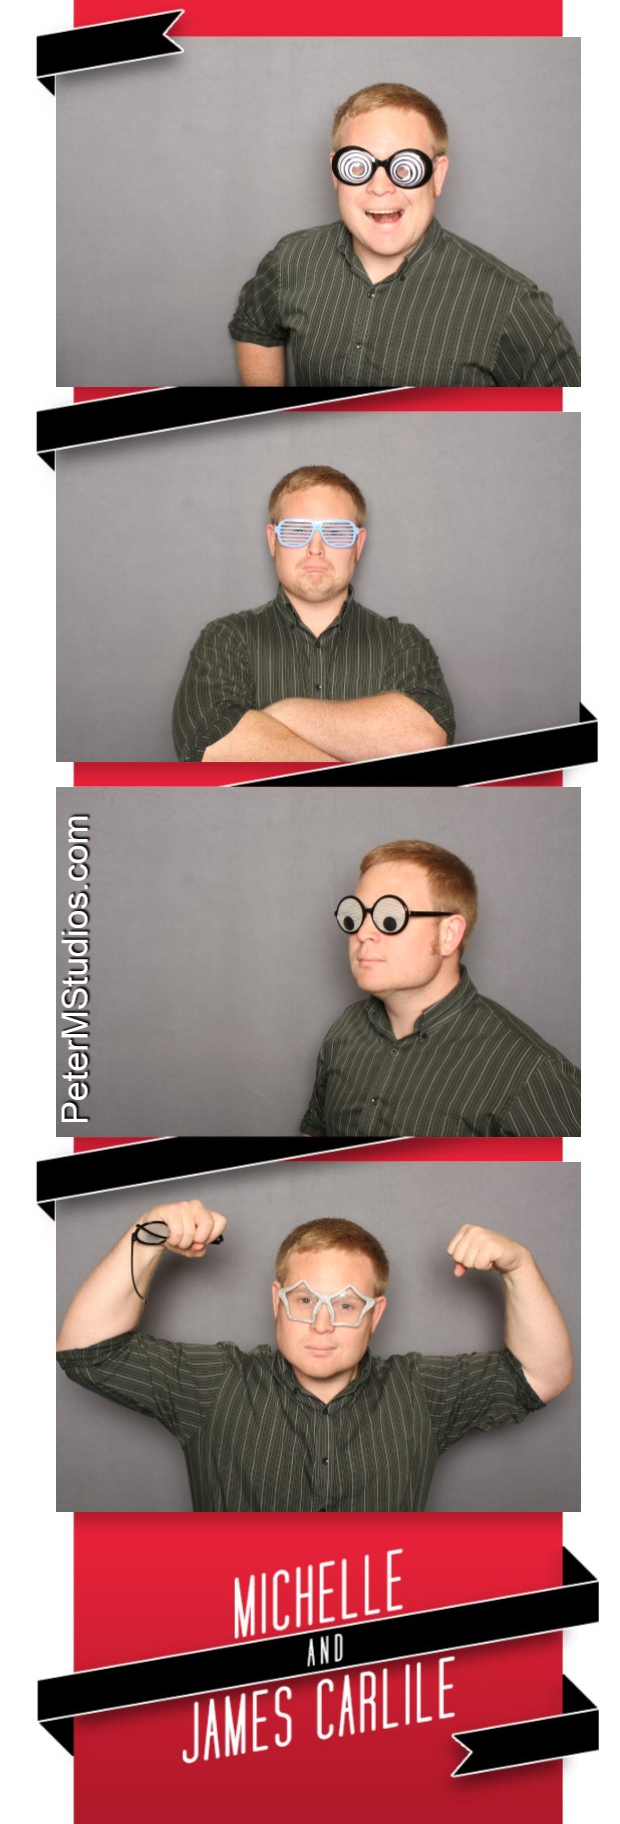 peter m studios photo booth rental lubbock